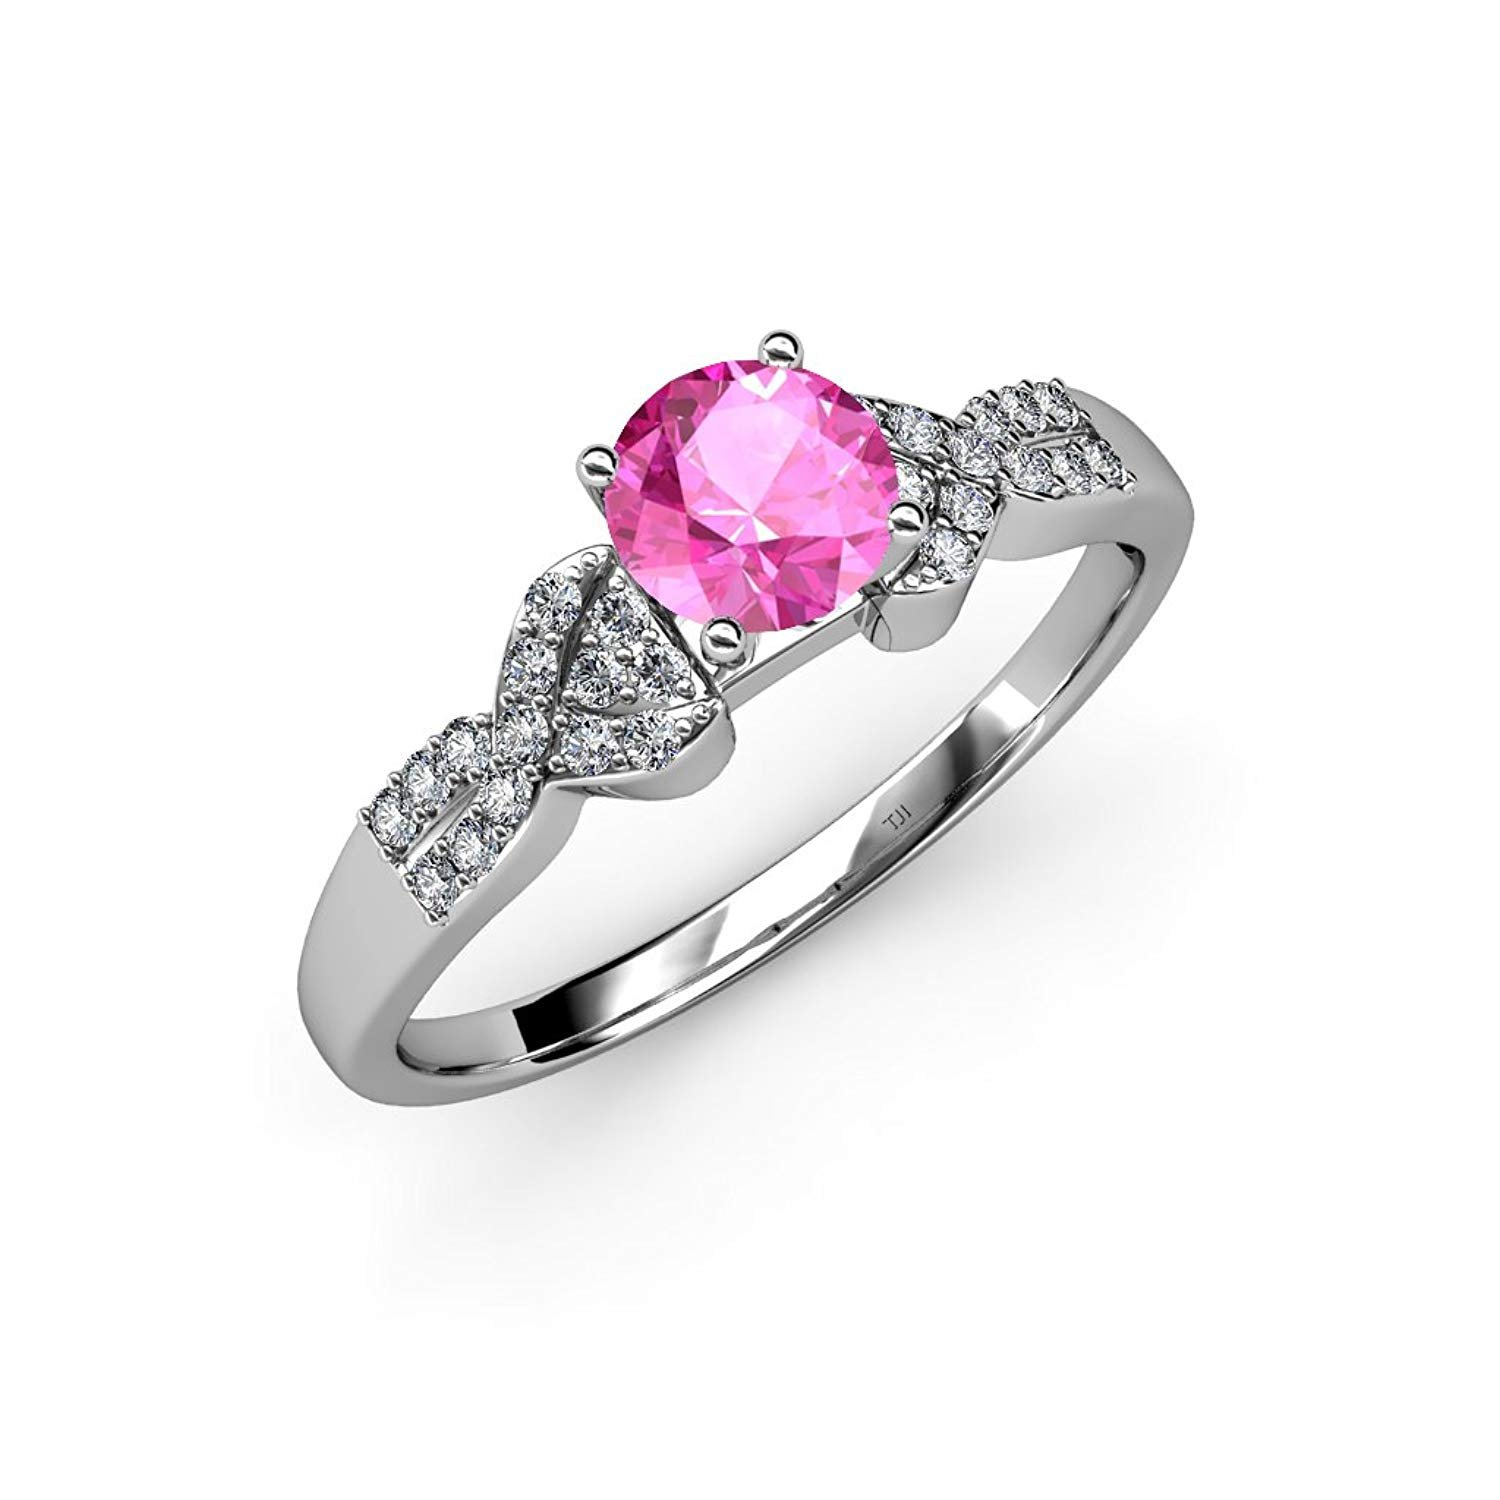 Pink Sapphire and Diamond (SI2-I1, G-H) Engagement Ring 1.00 ct tw in 14K White Gold.size 7.5 by TriJewels